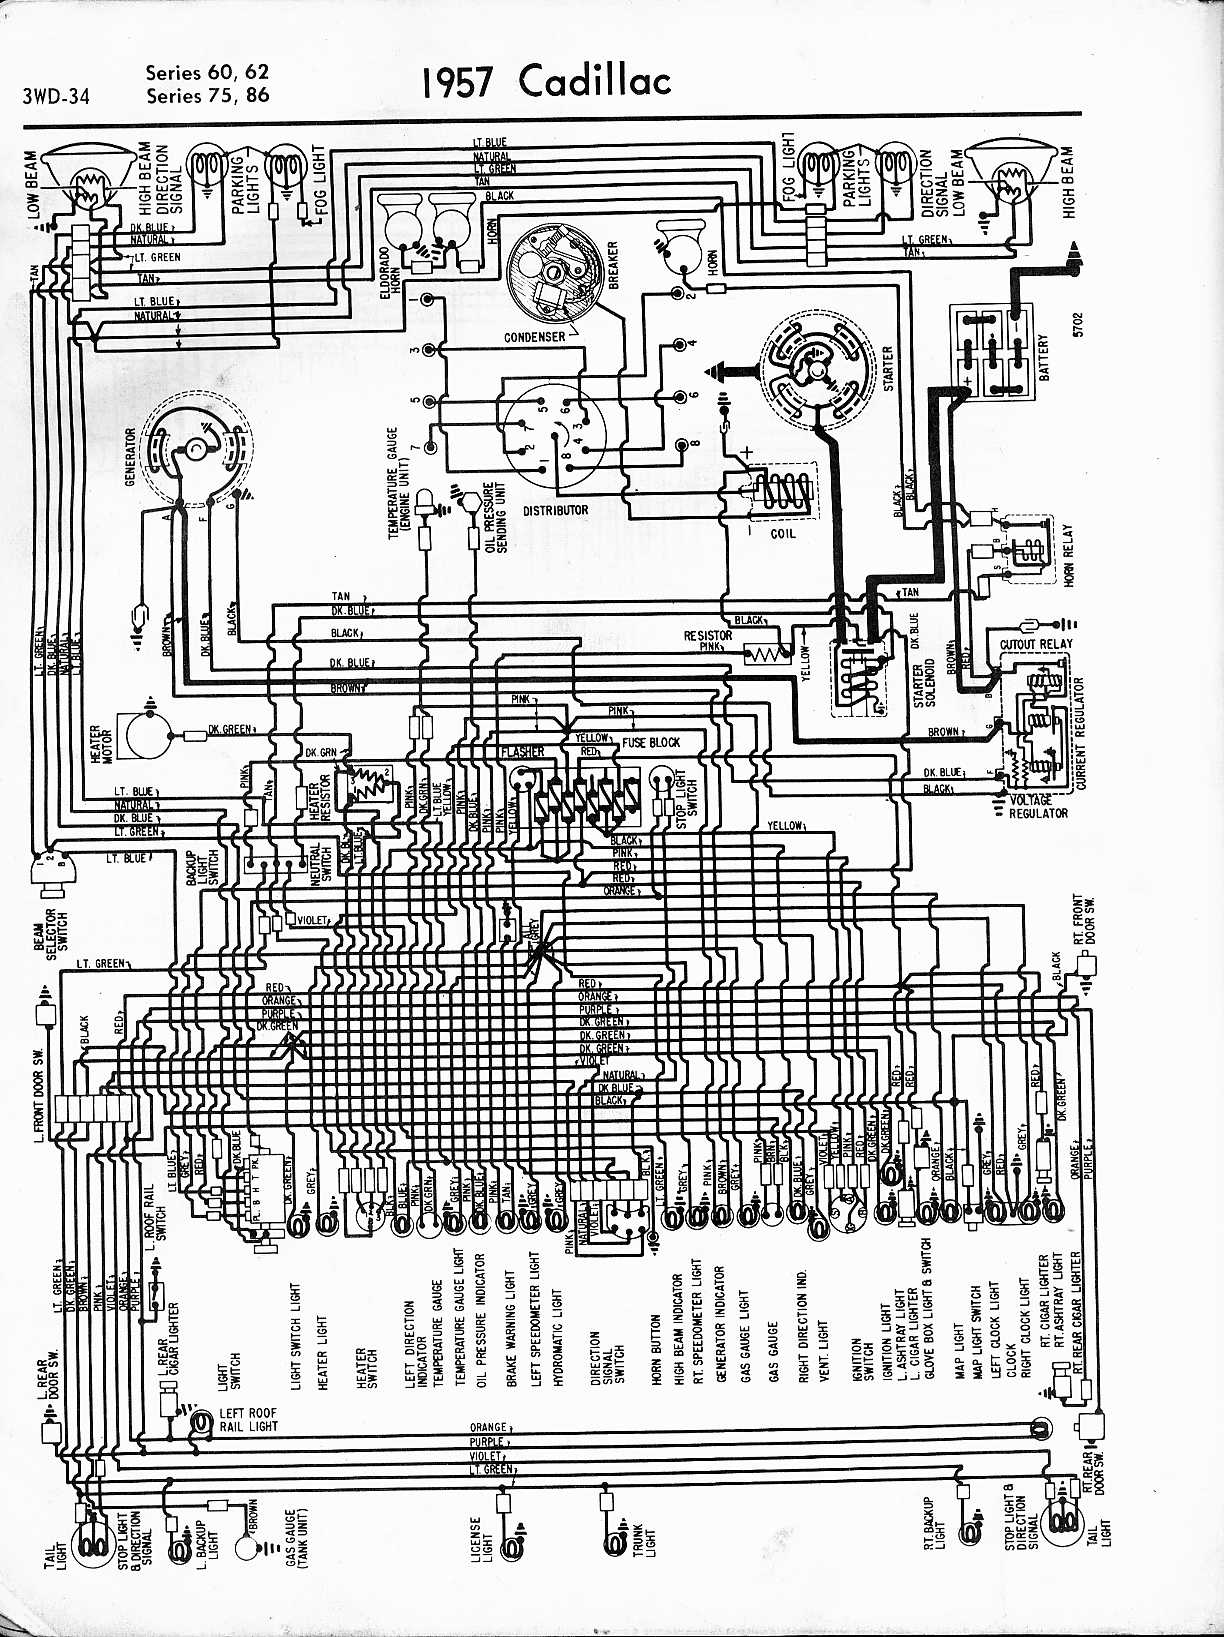 1939 buick wiring diagram my new project: 1956 cadillac sedan deville resurrection ...